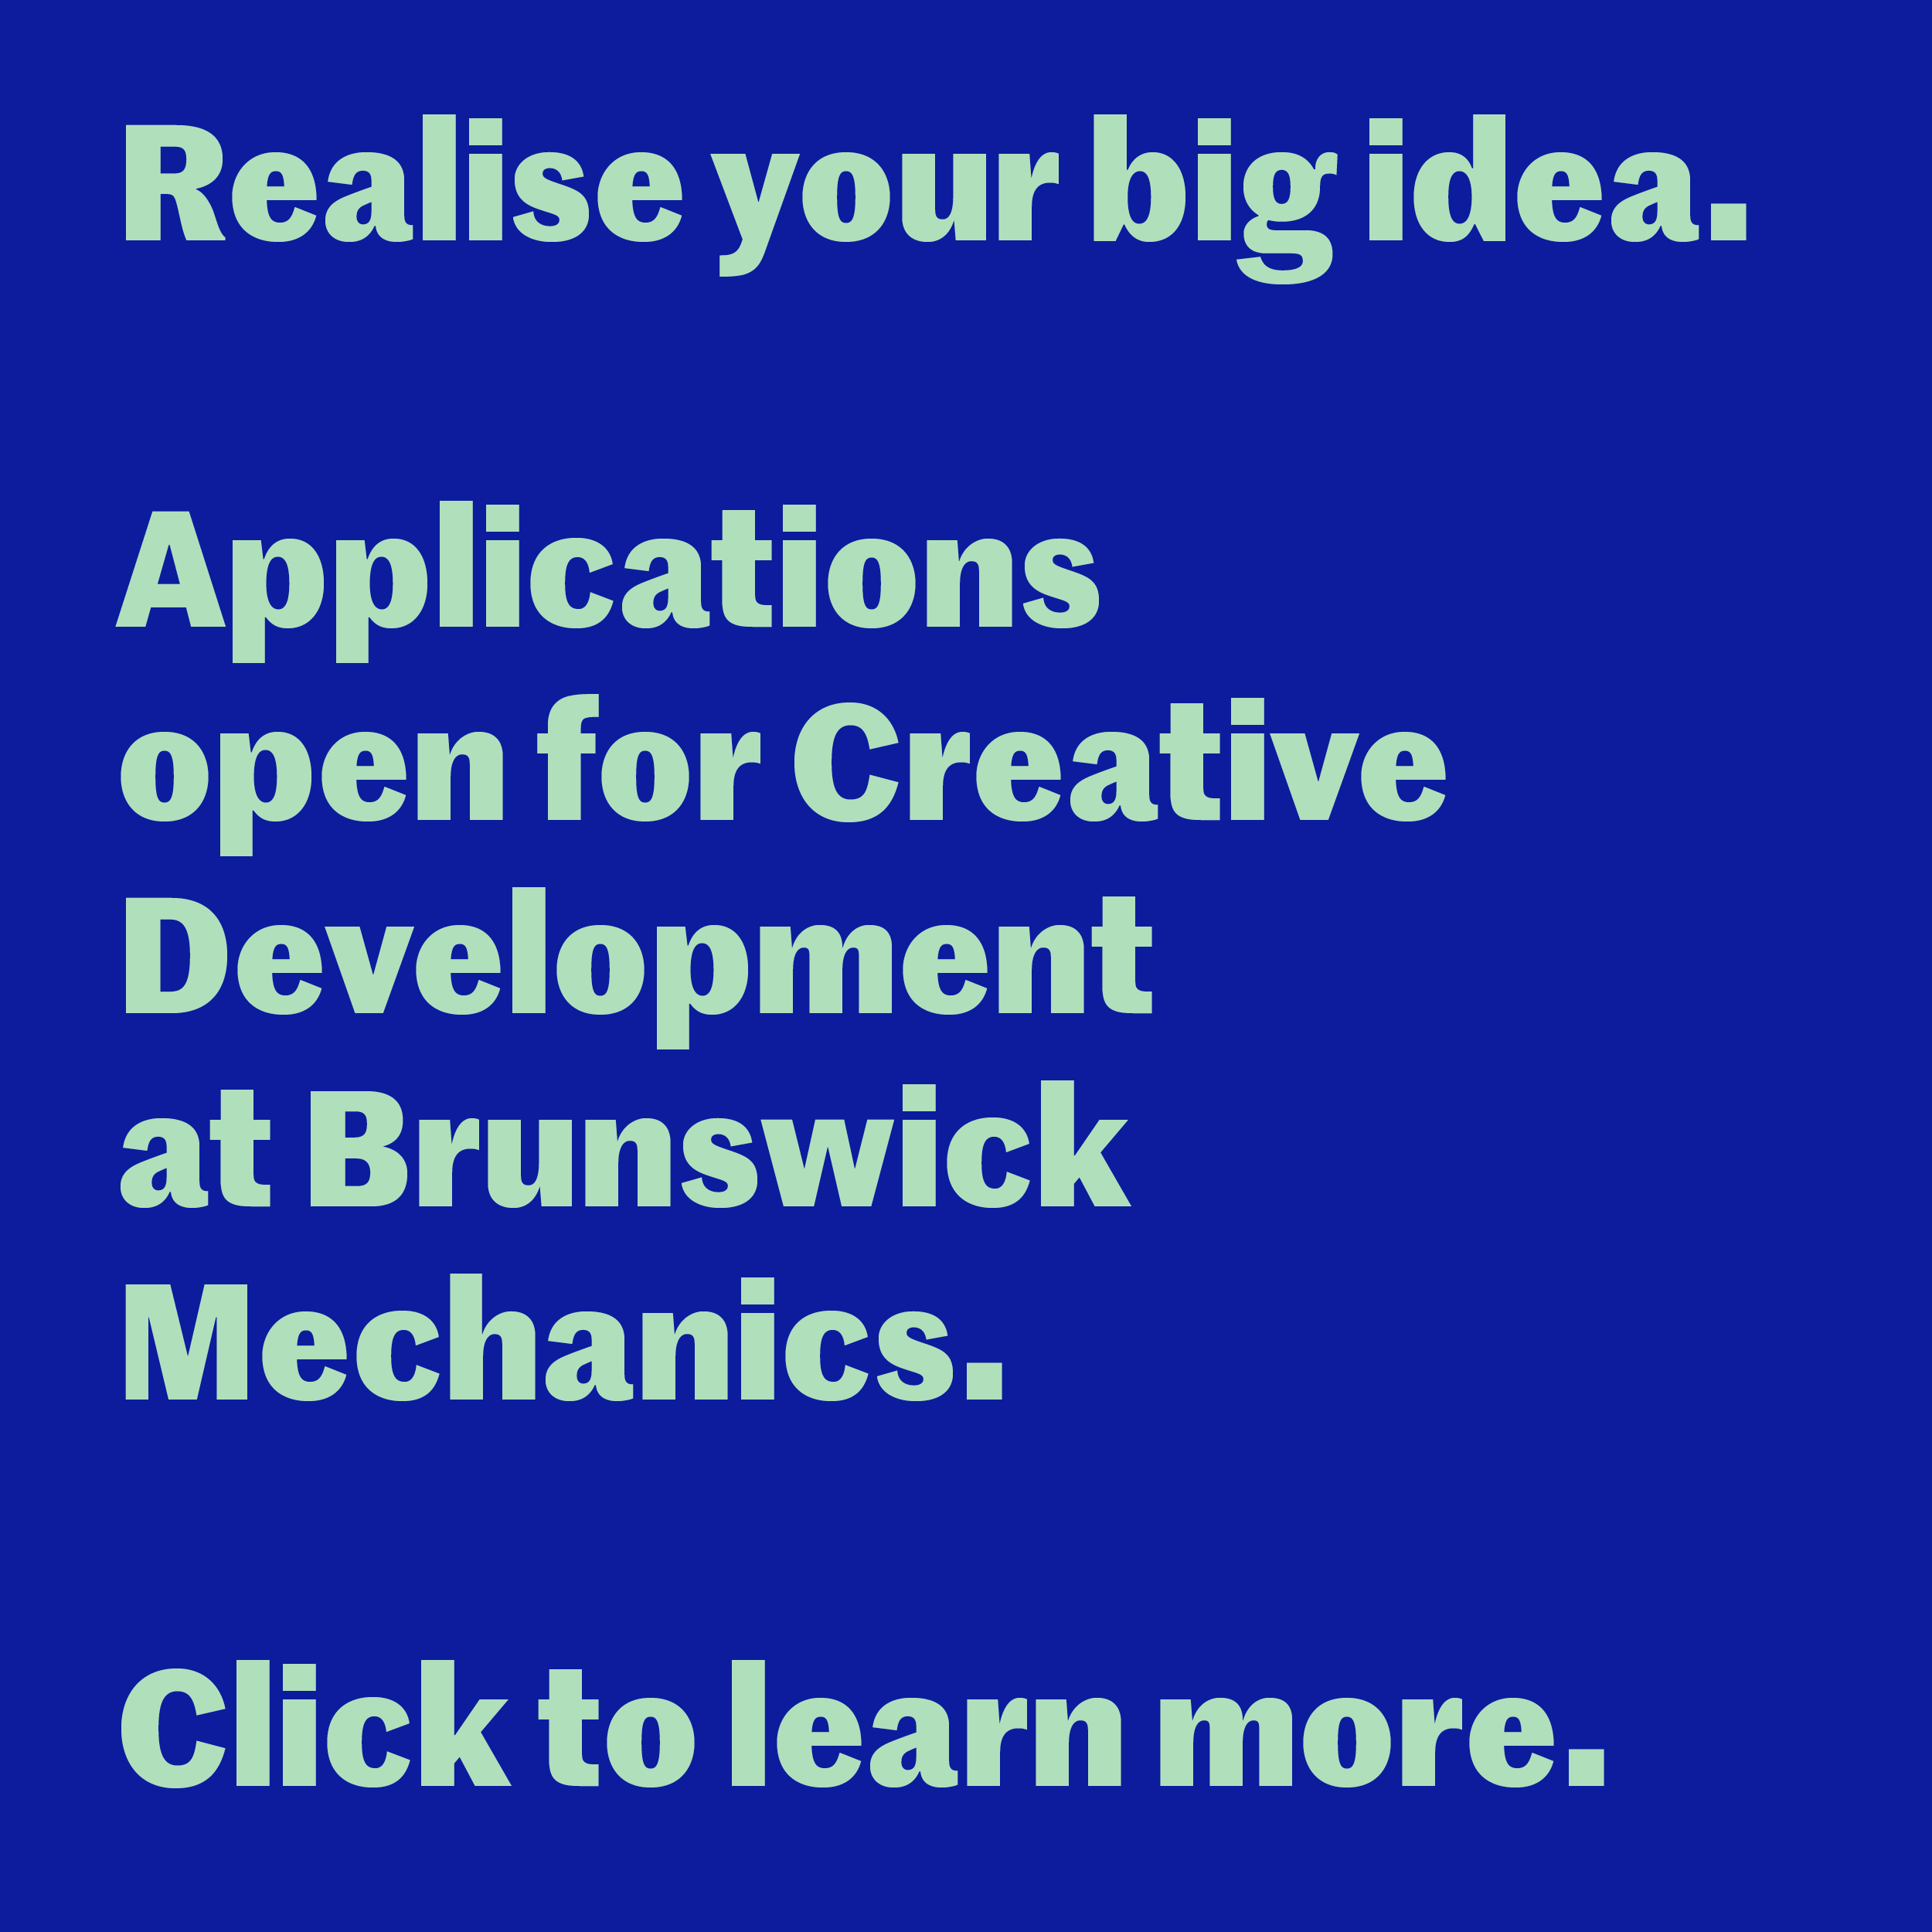 Text reads: Realise your big idea. Applications open for Creative Development at Brunswick Mechanics. Click to learn more.